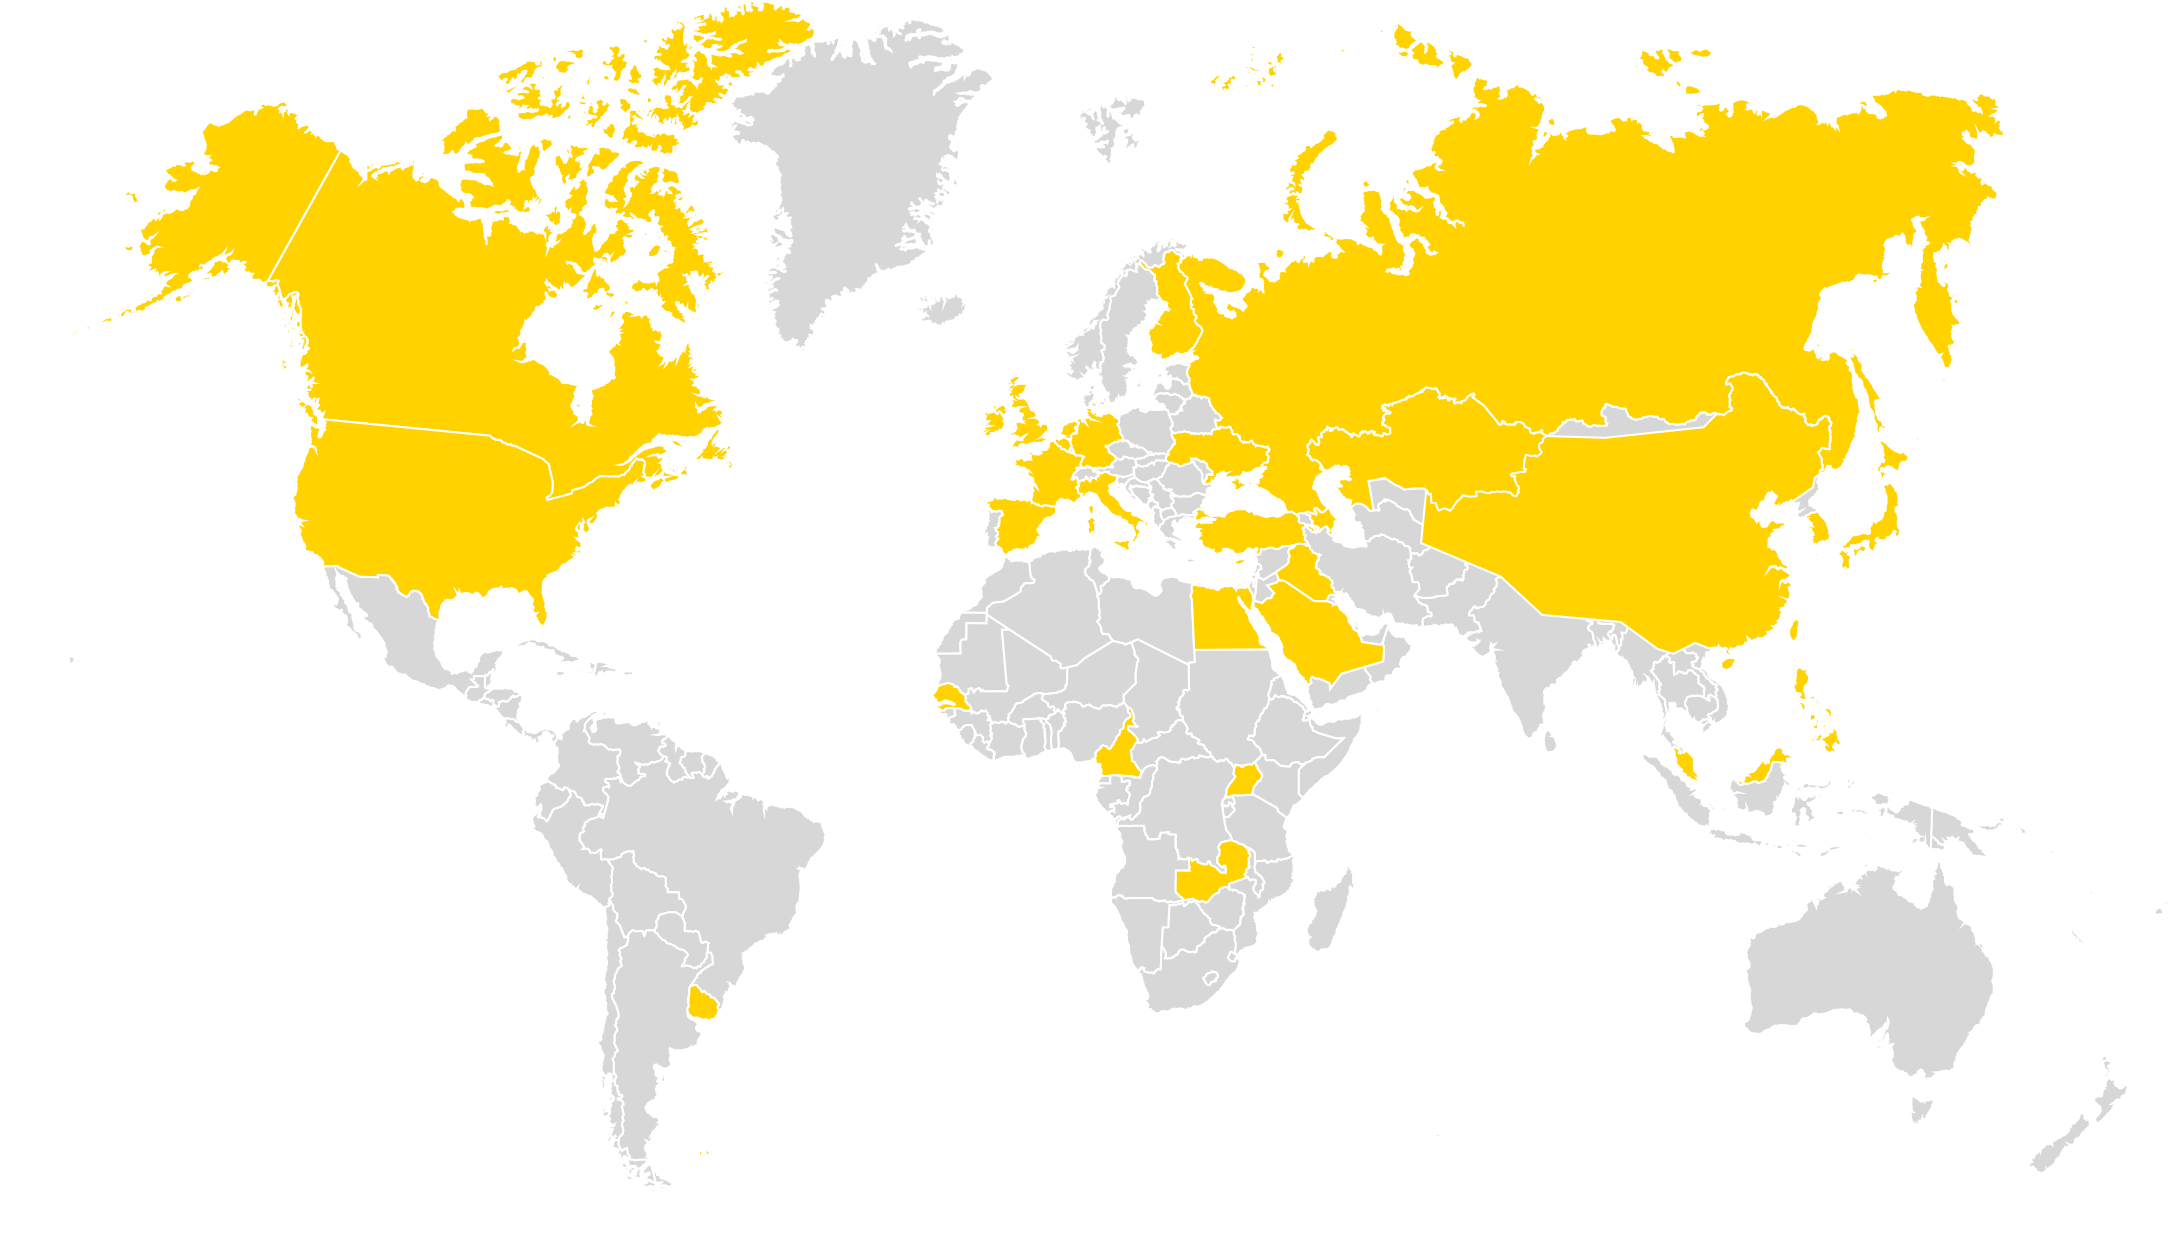 world map showing global omk installations and projects